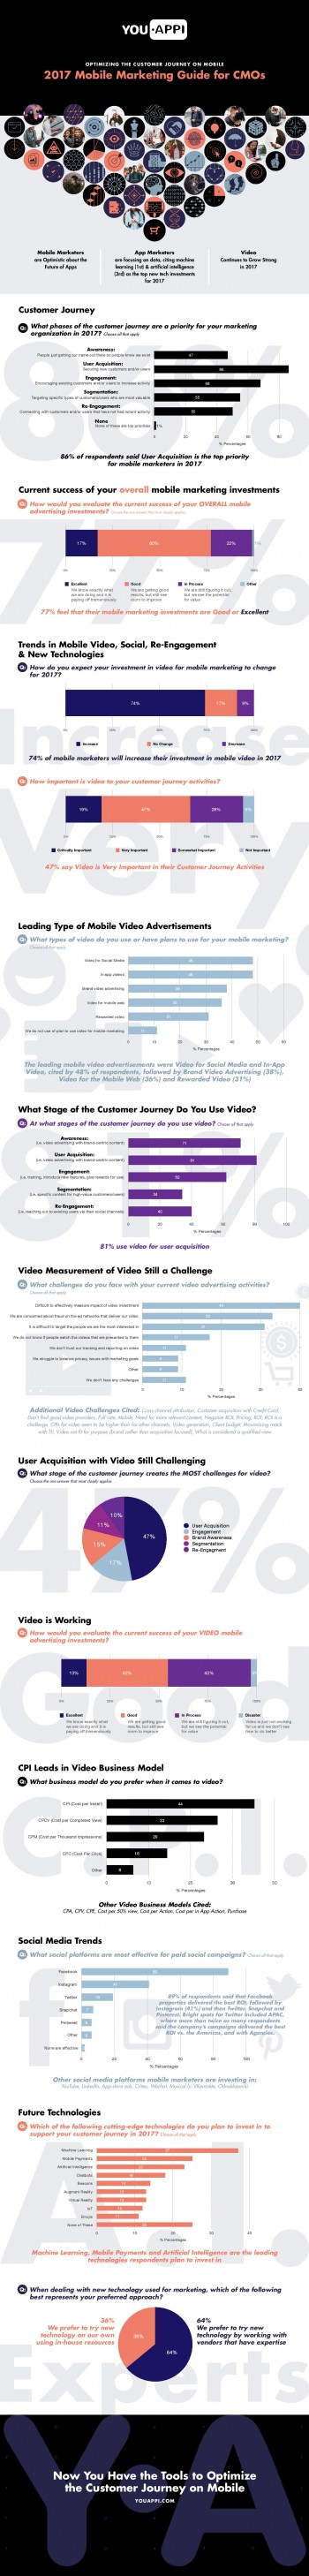 YouAppi Mobile Marketing CMO Guide Infographic